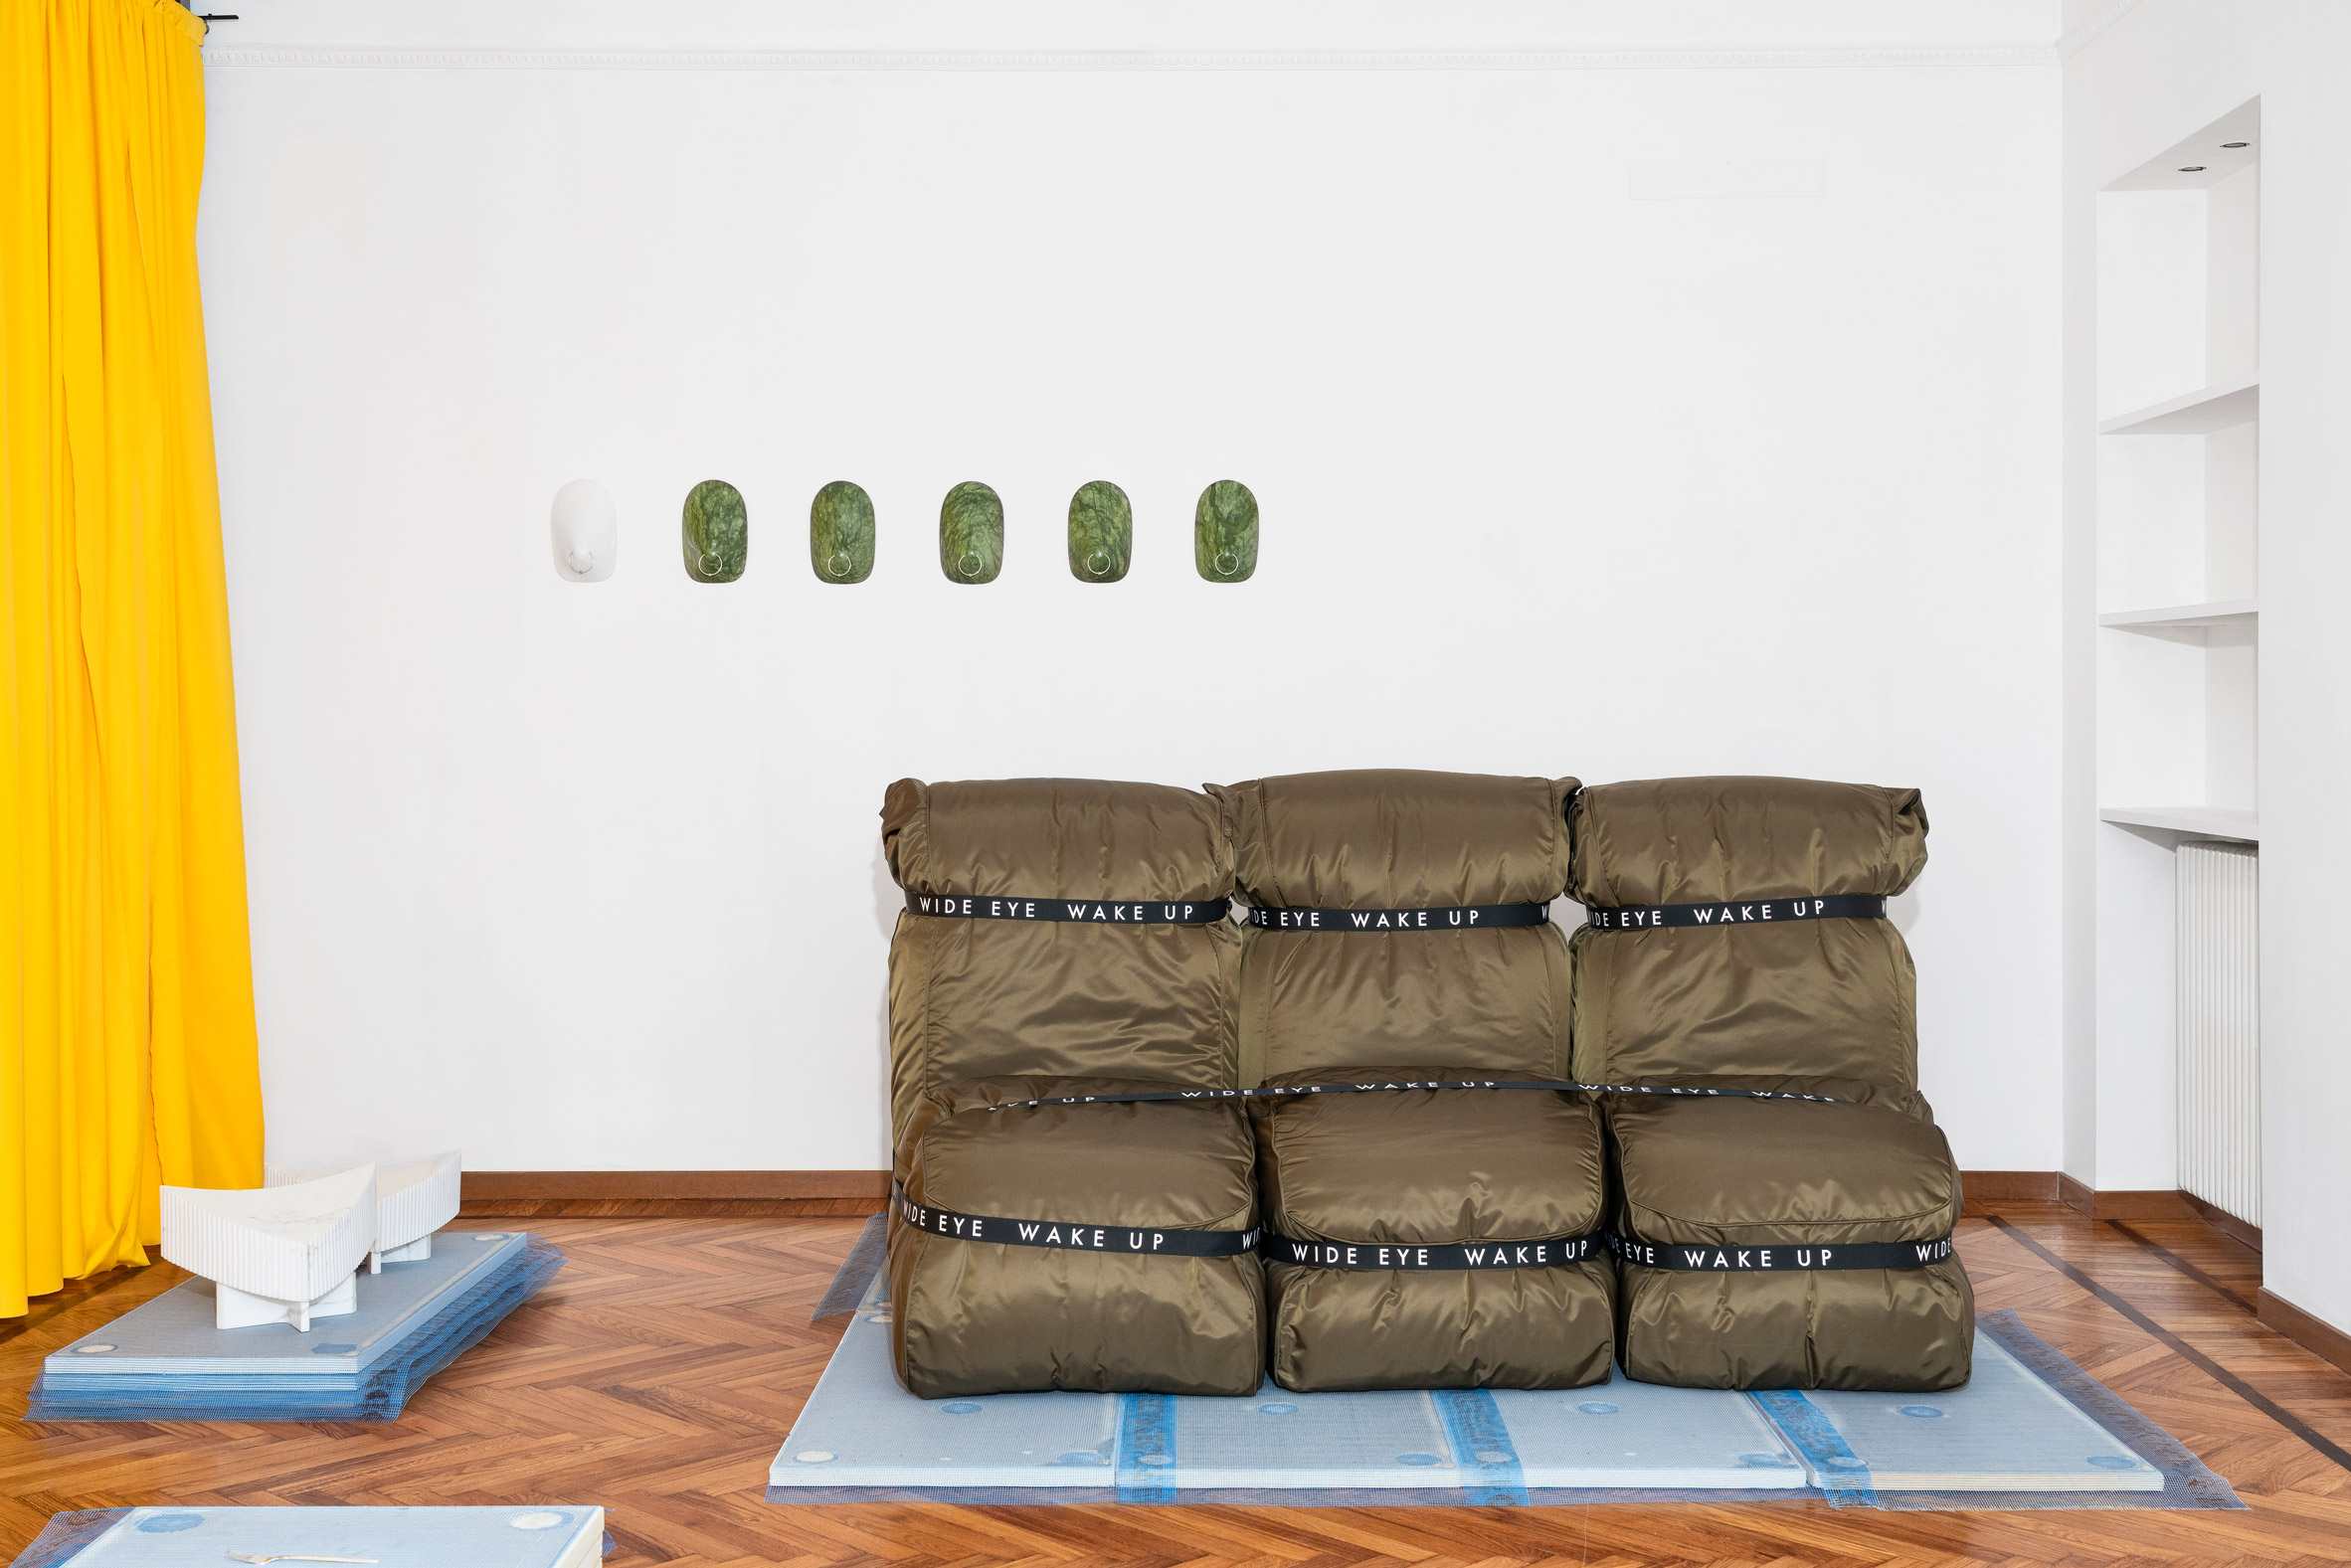 The Wide Eye Wake Up sofa, Perky wall-hangings and Gunnol lamps by Older studio and Alexander Vinther